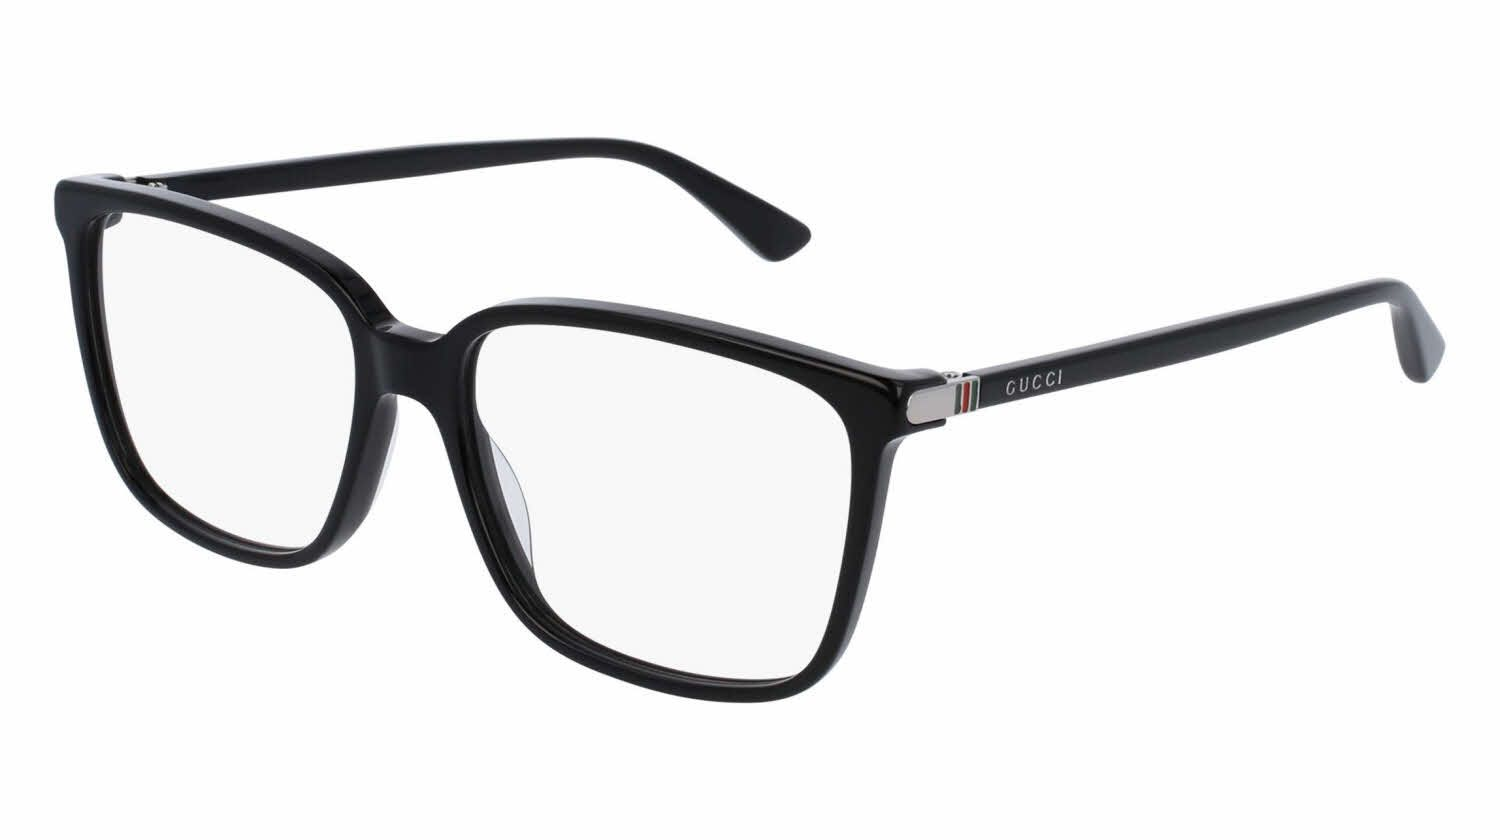 e1fa2684e Gucci GG0019O Eyeglasses | 50% Off Lenses and Add-Ons! + | Prescription  lenses, designer frame, Price Match Guarantee